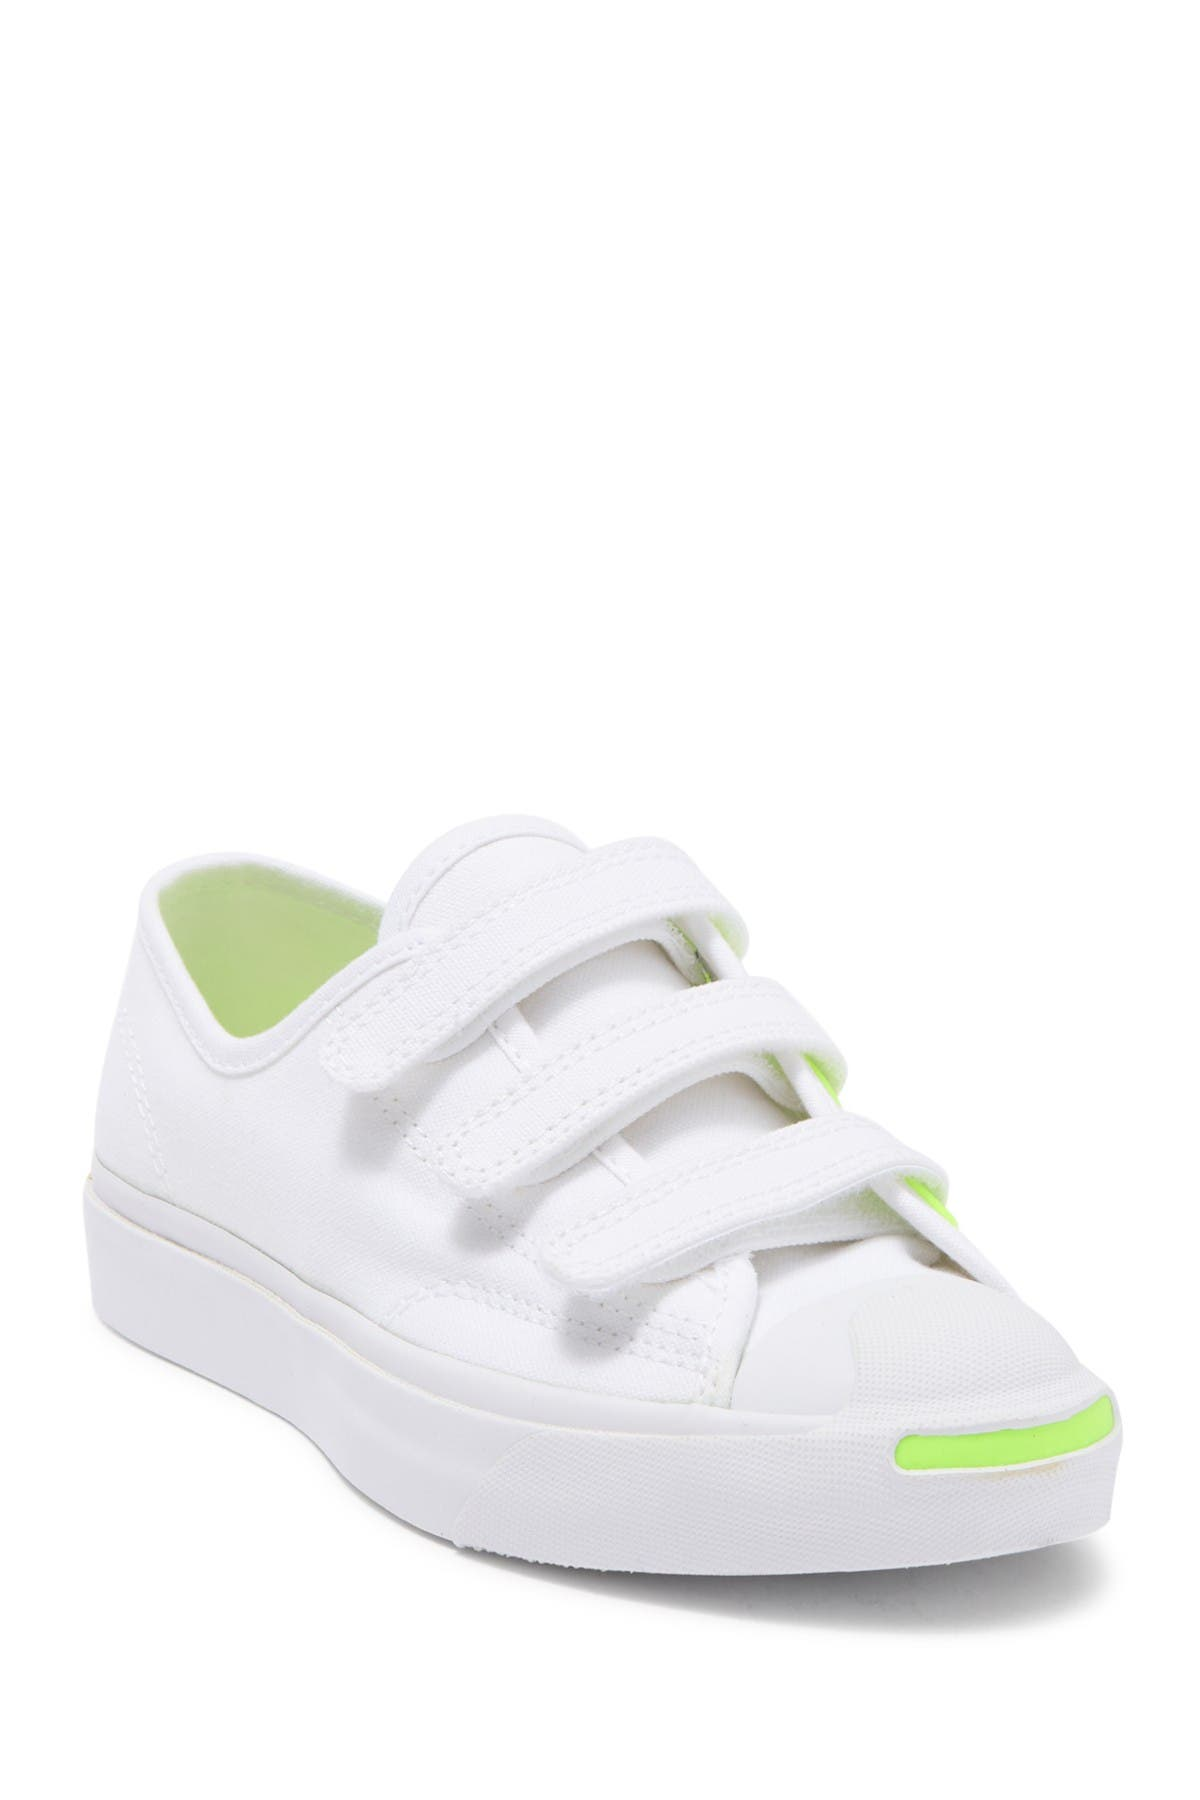 Image of Converse Jack Purcell 3V Oxford Strap Sneaker